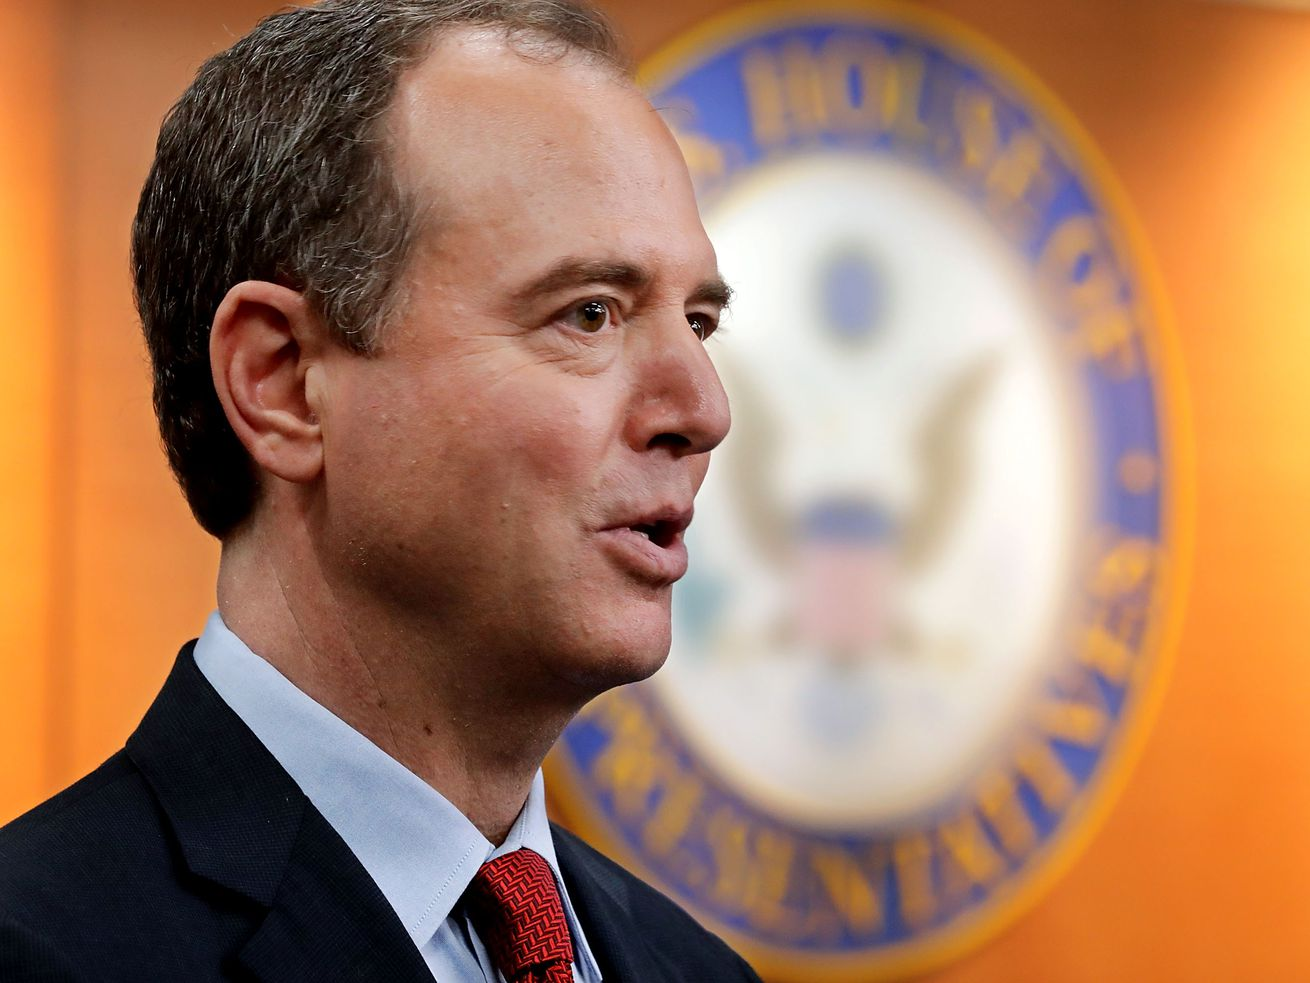 House Intelligence Committee Ranking Member Rep. Adam Schiff (D-CA), who will likely lead the panel int he next Congress.